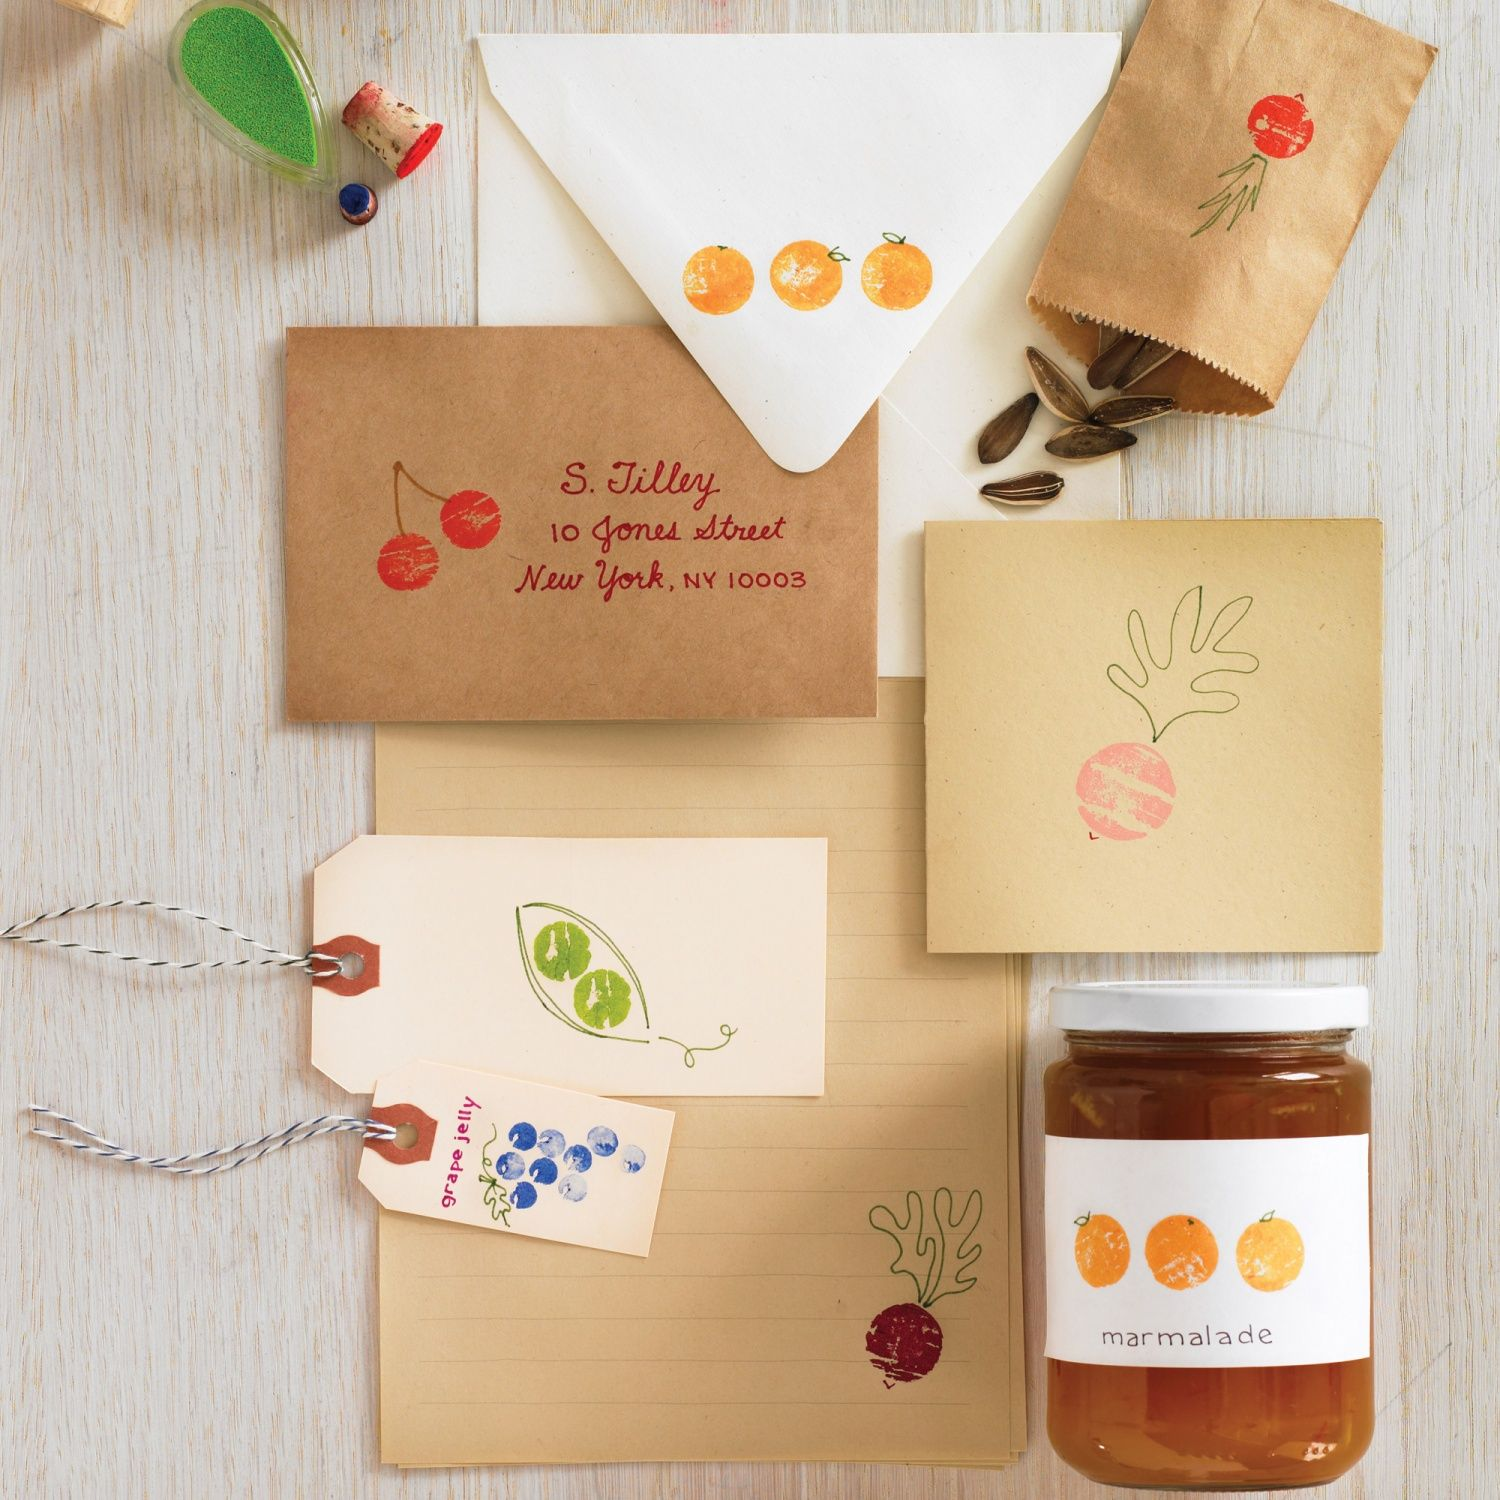 Graphic fruit and vegetable motifs are in season now. but rather than investing in garden-variety rubber stamps, repurpose a few corks. Just add ink and a little imagination for custom party invitations, stationery, gift tags, and labels for your kitchen creations.